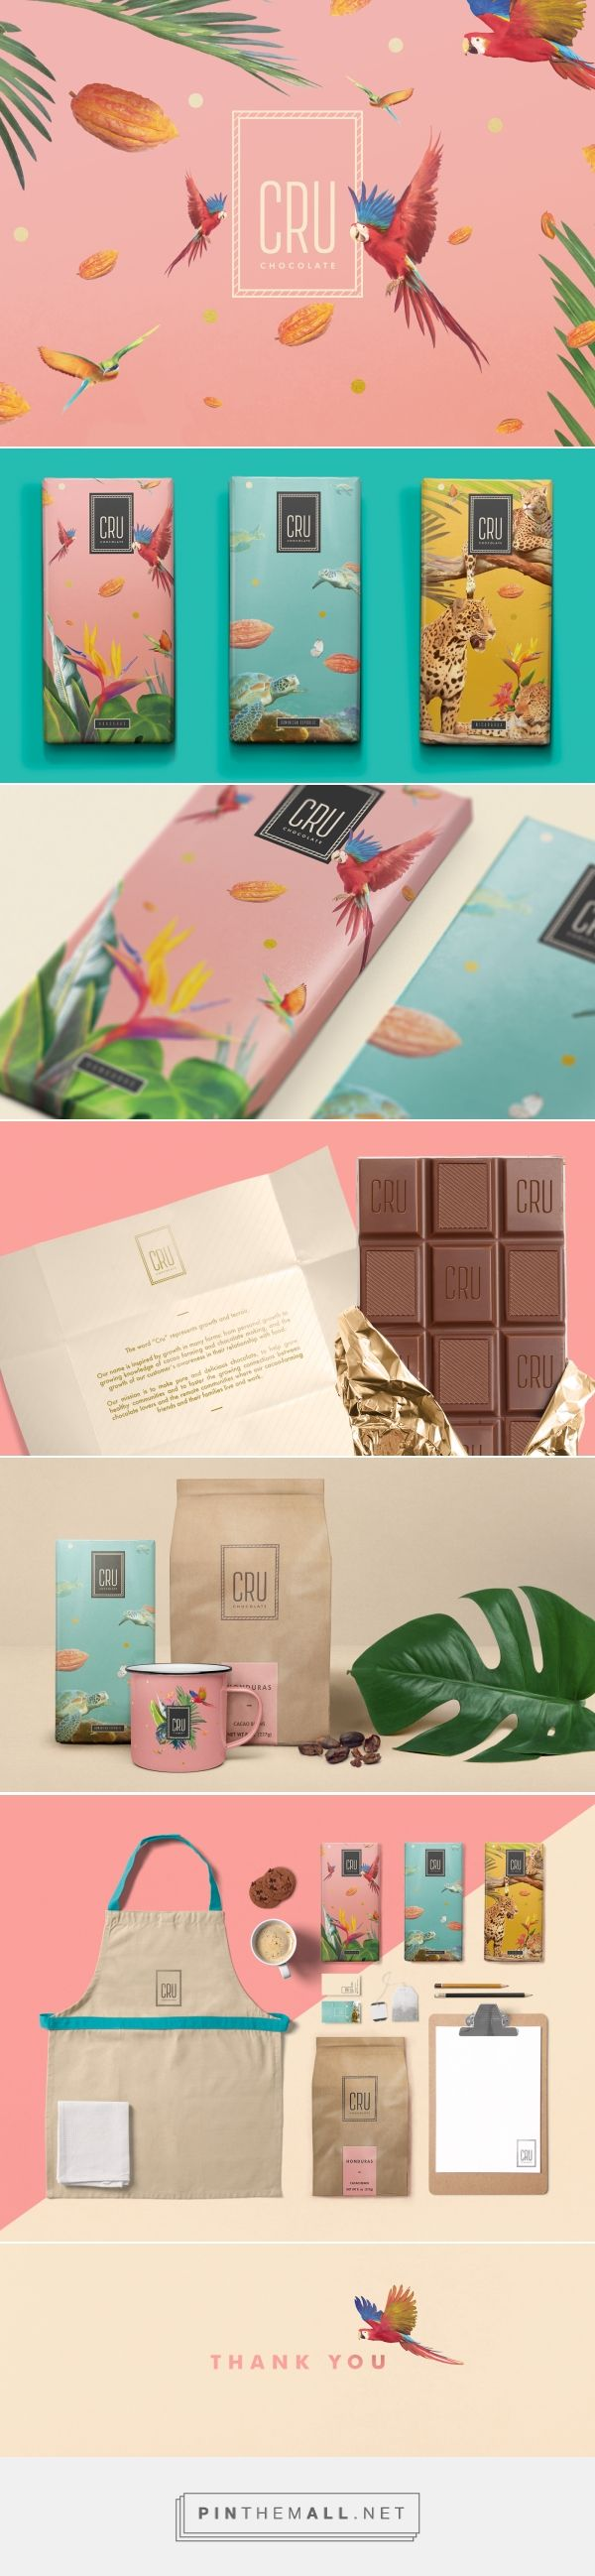 CRU Chocolate Branding and Packaging by Nicolas Rudy | Fivestar Branding � Design and Branding Agency & Inspiration Gallery